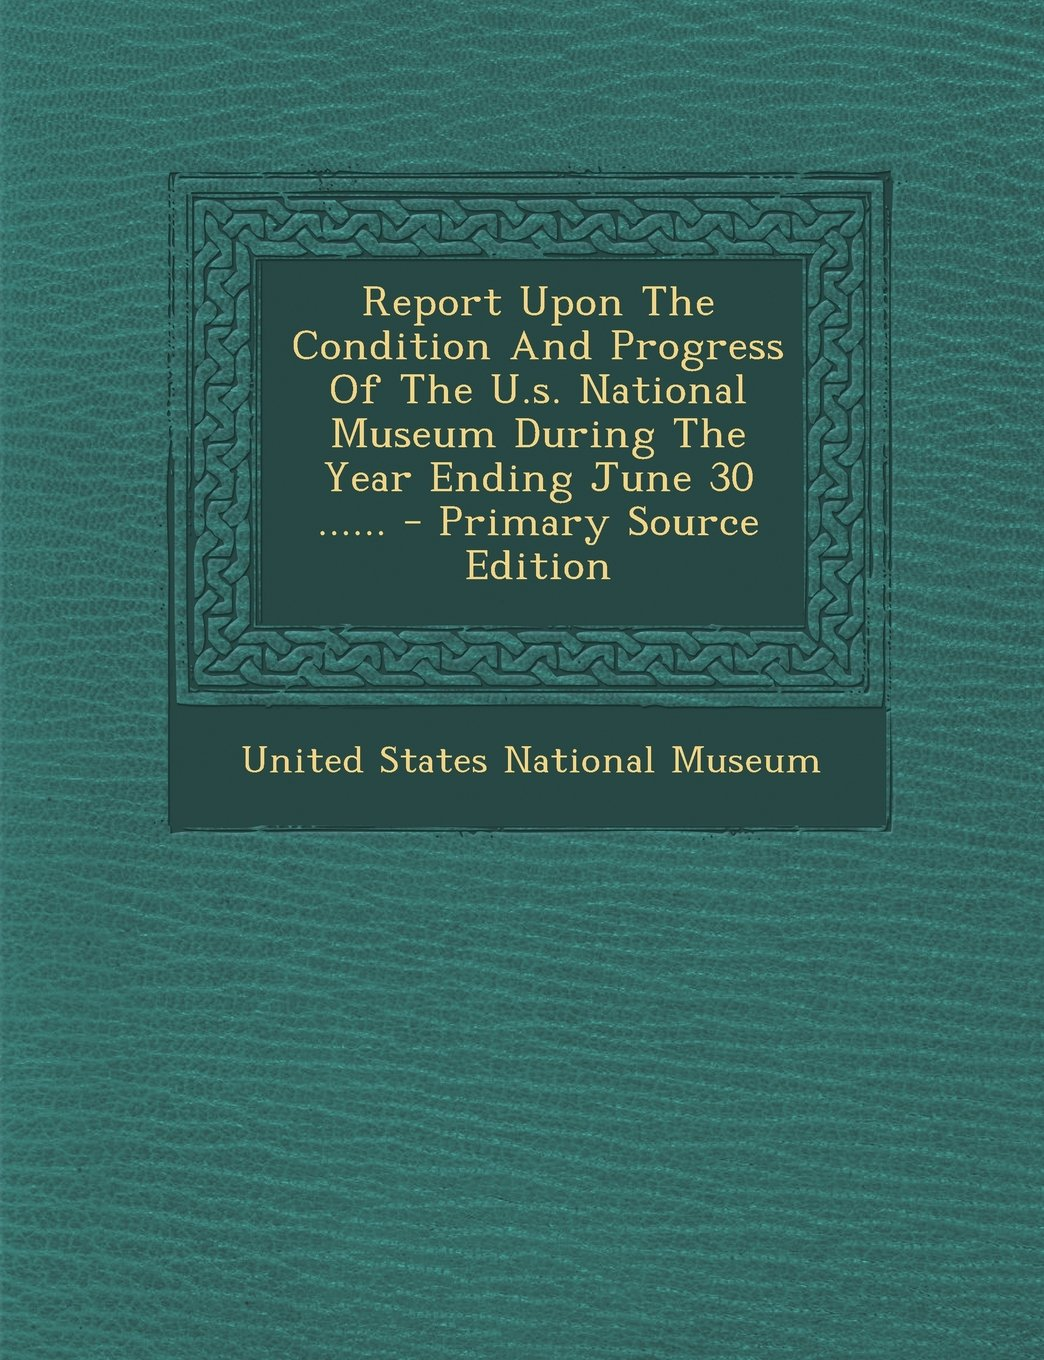 Report Upon The Condition And Progress Of The U.s. National Museum During The Year Ending June 30 ...... - Primary Source Edition pdf